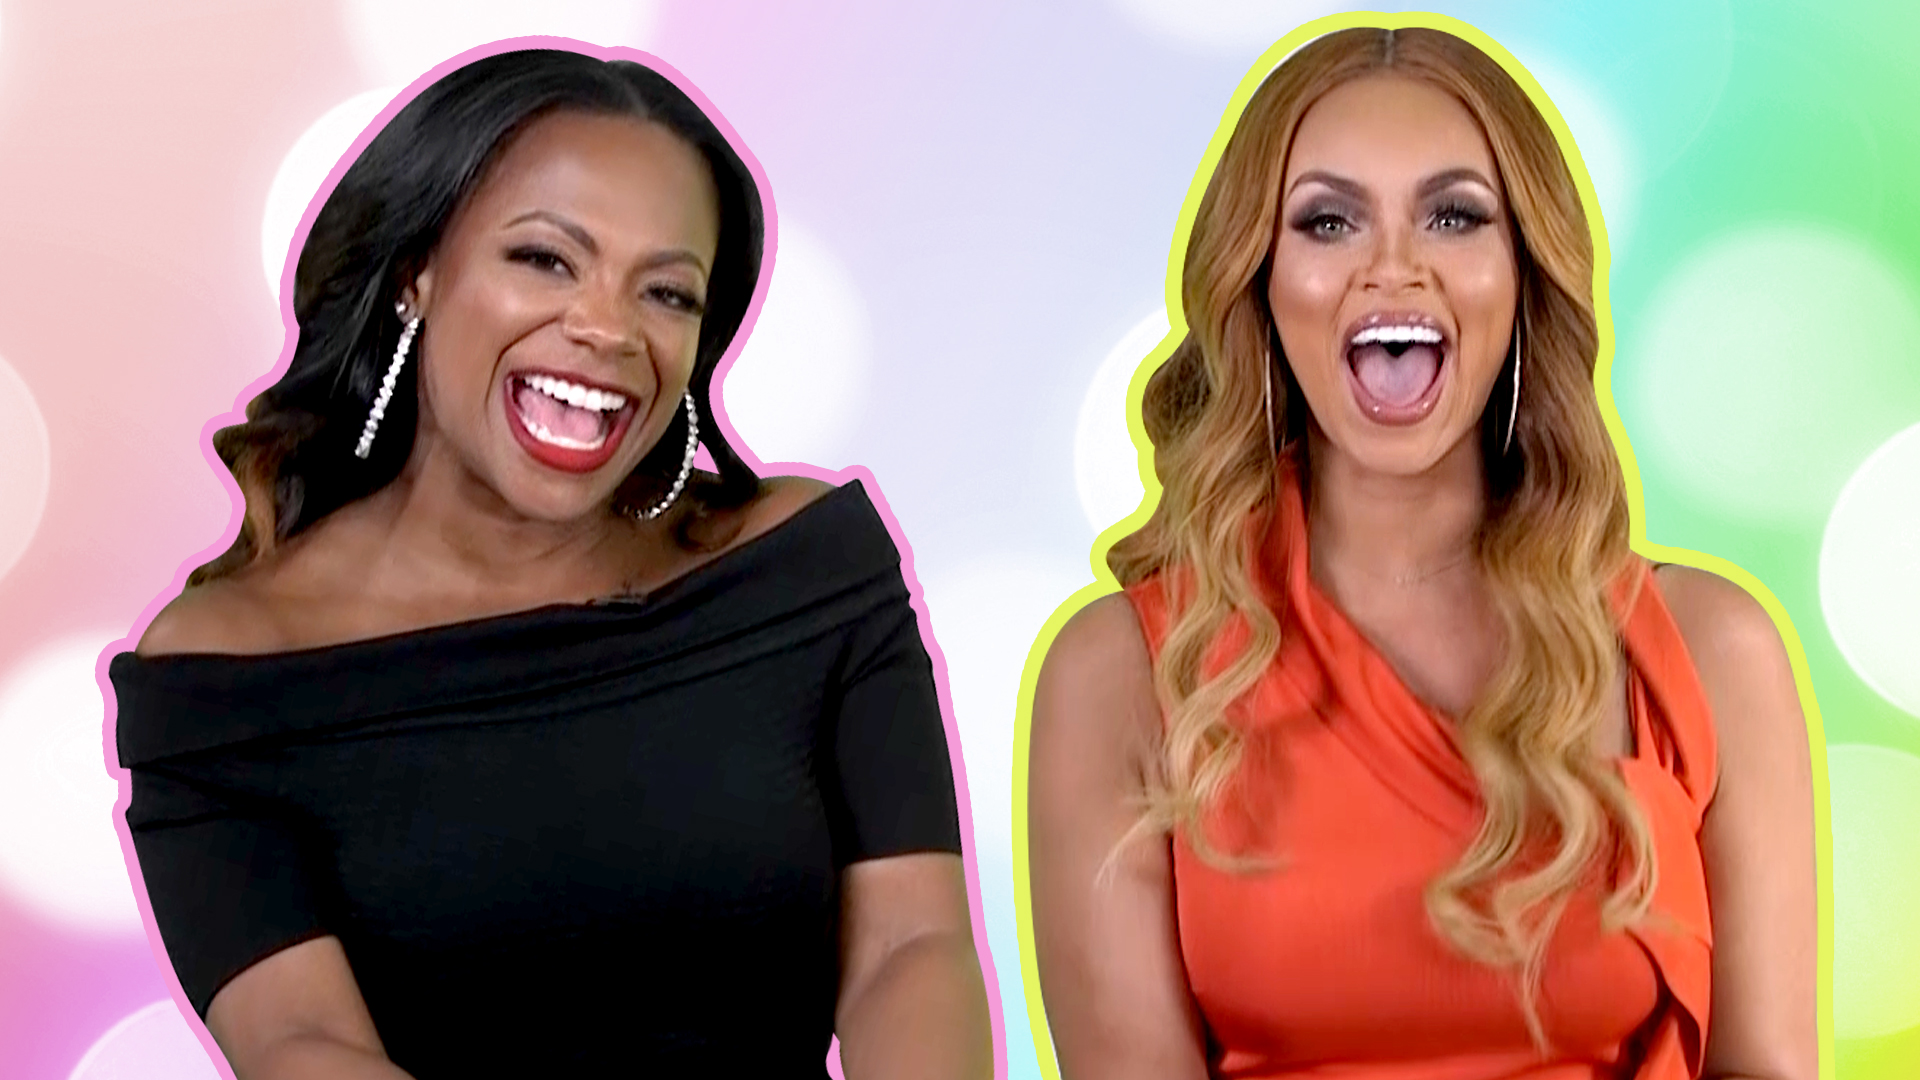 Will Kandi Burruss and Gizelle Bryant Take Their 'Girl-mance' to the Next Level?